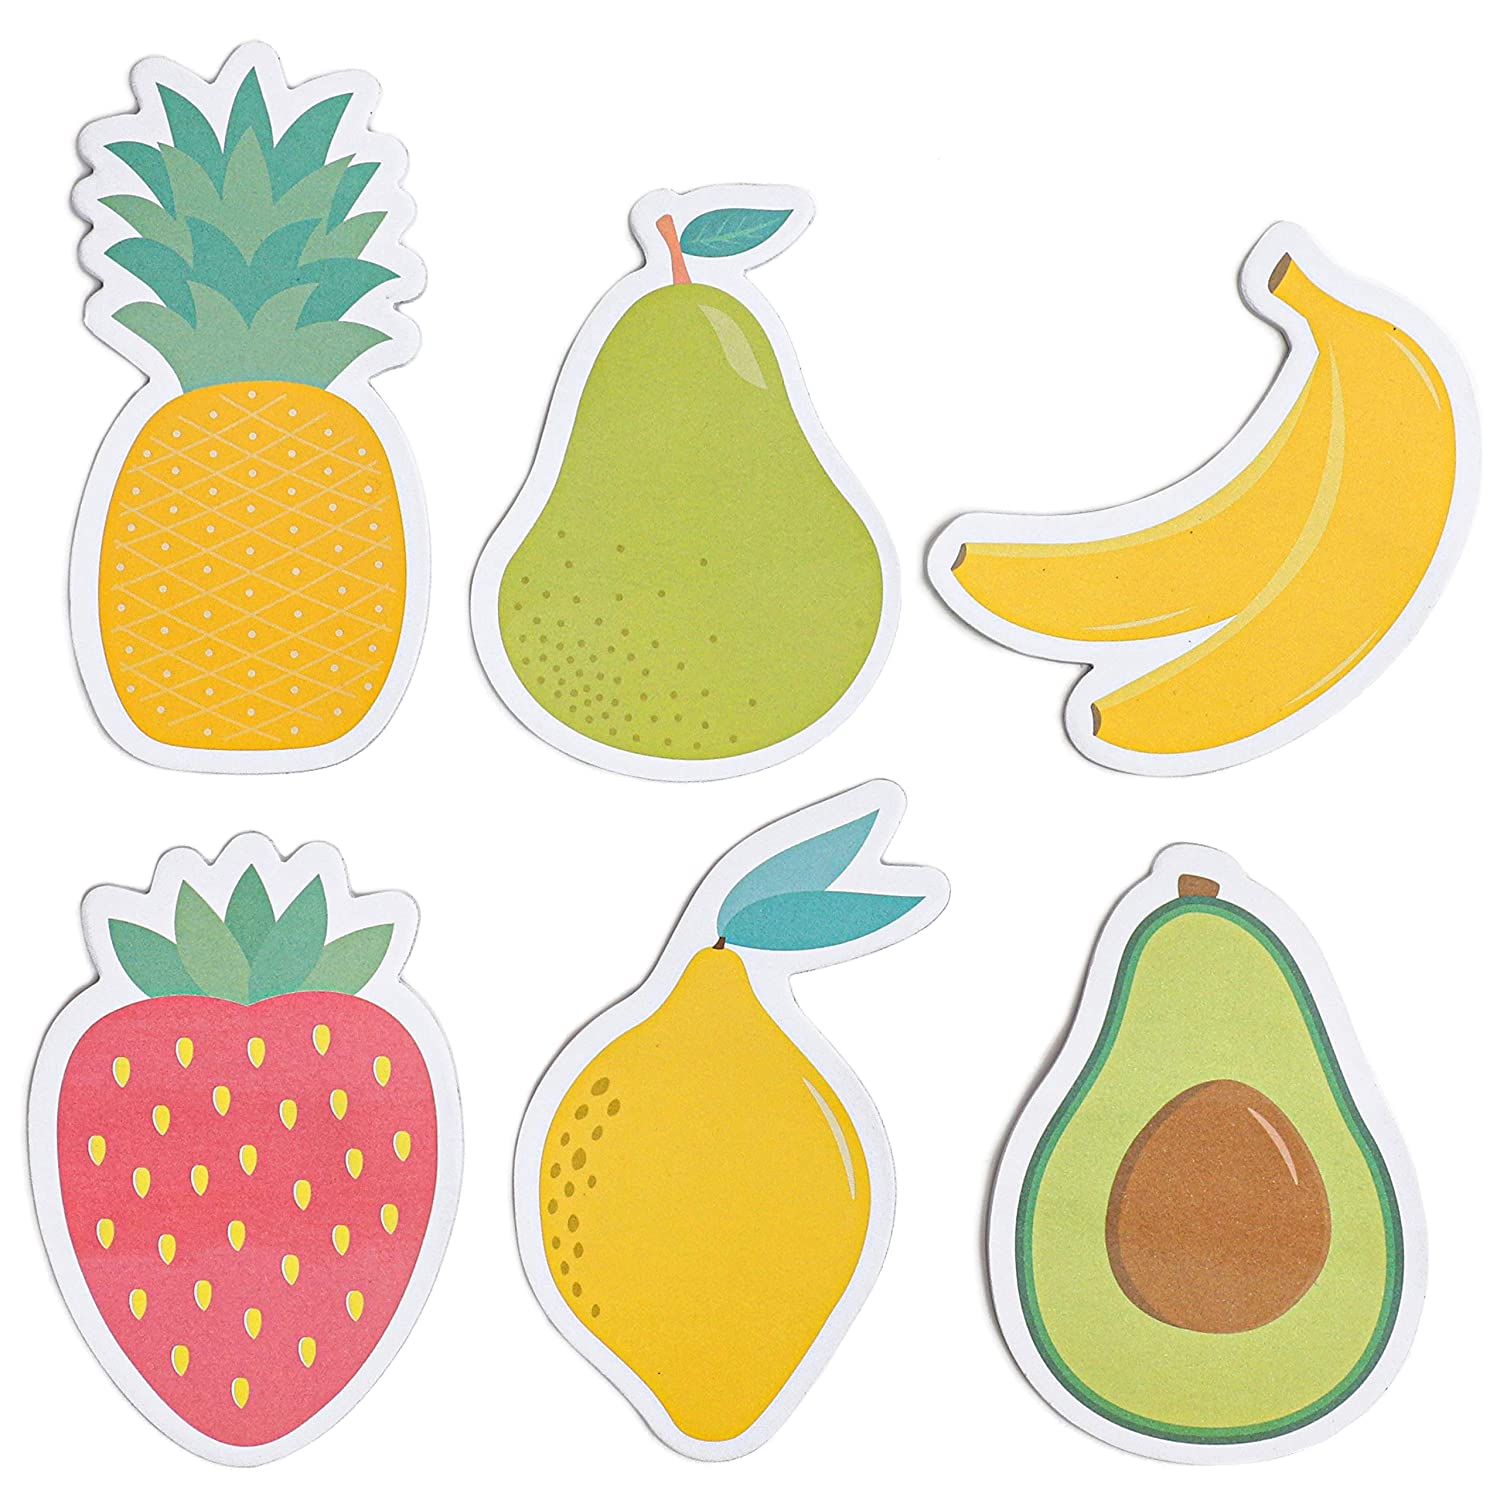 Fruit Shaped Sticky Notes (2.5 x 3.5 in, 6-Pack, 20 Sheets Per Pack)